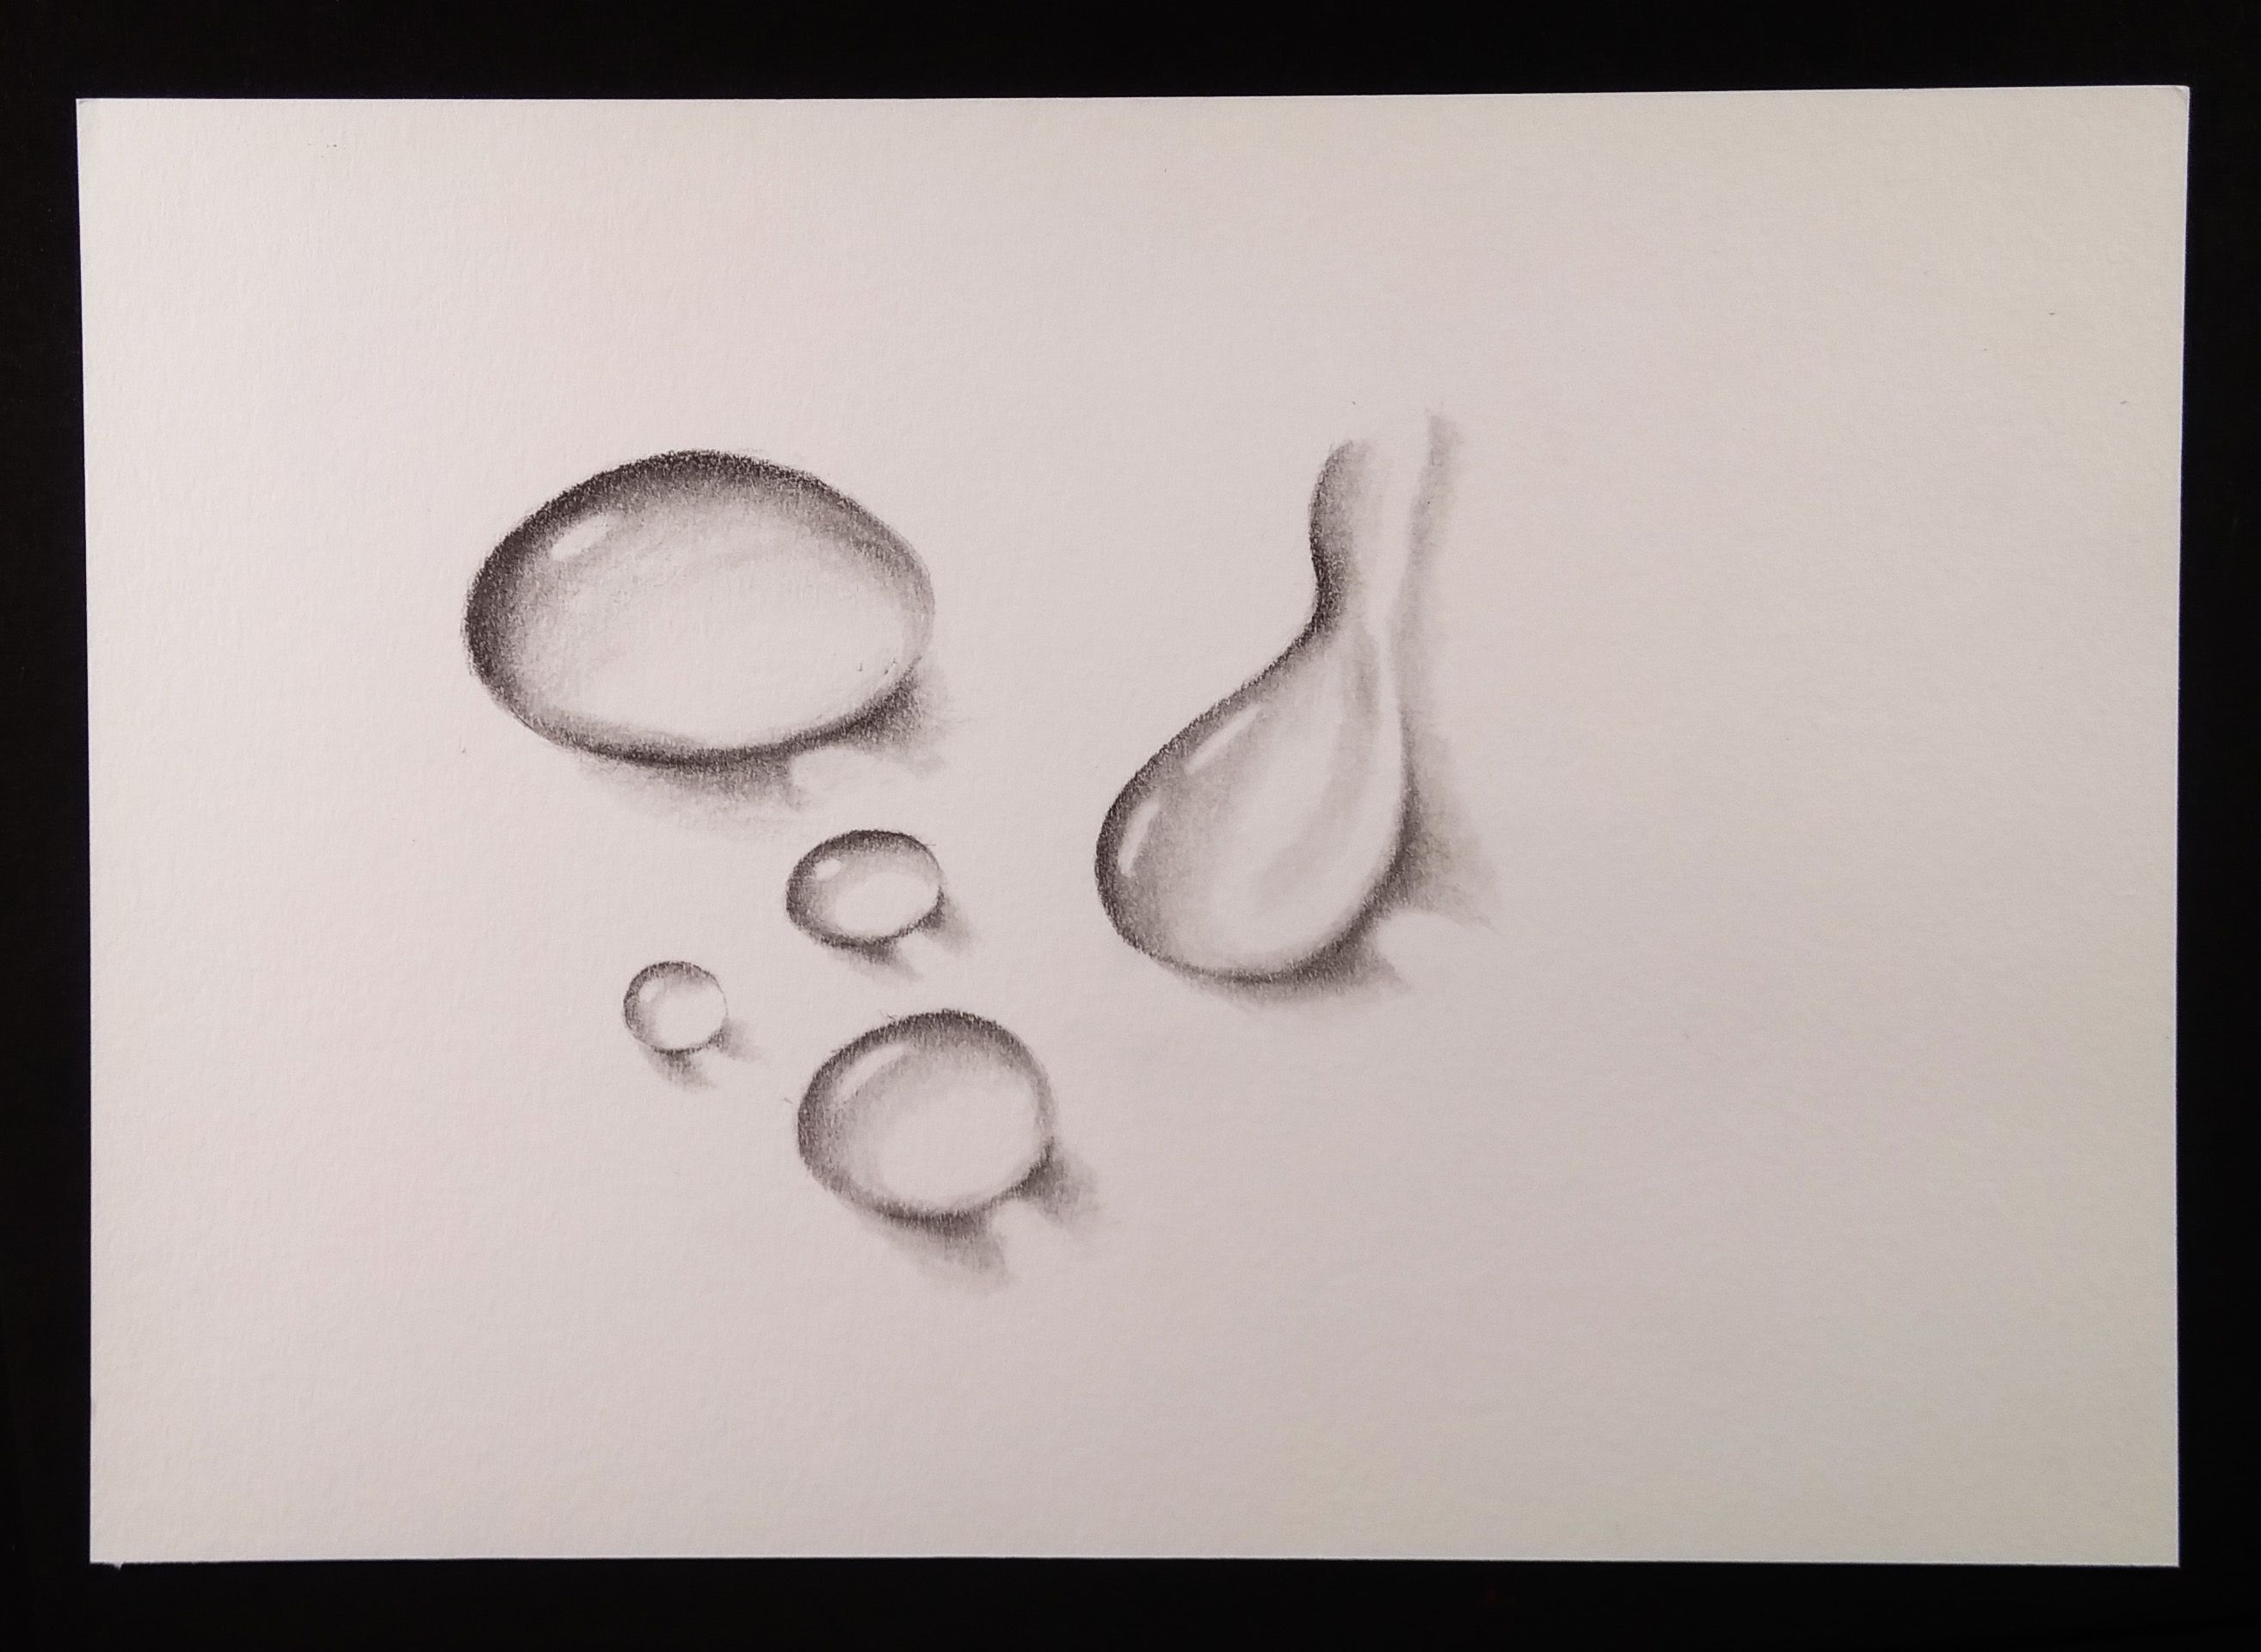 Hi all this pencil sketch tutorial explains how to draw water drops